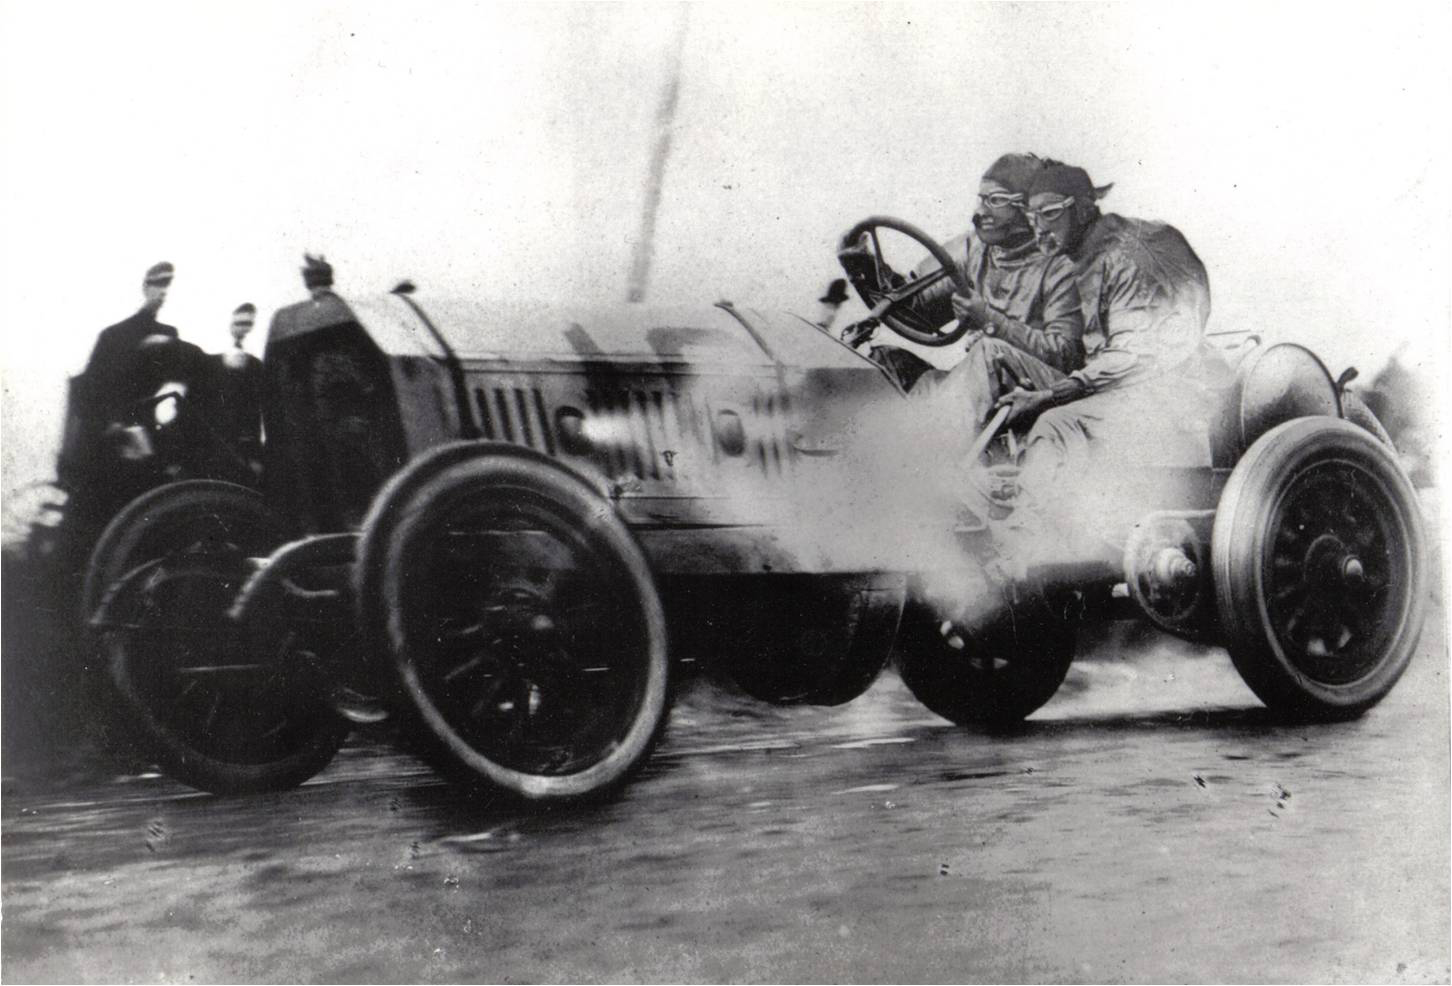 VWVortex.com - Explain This Historic Racing Photograph